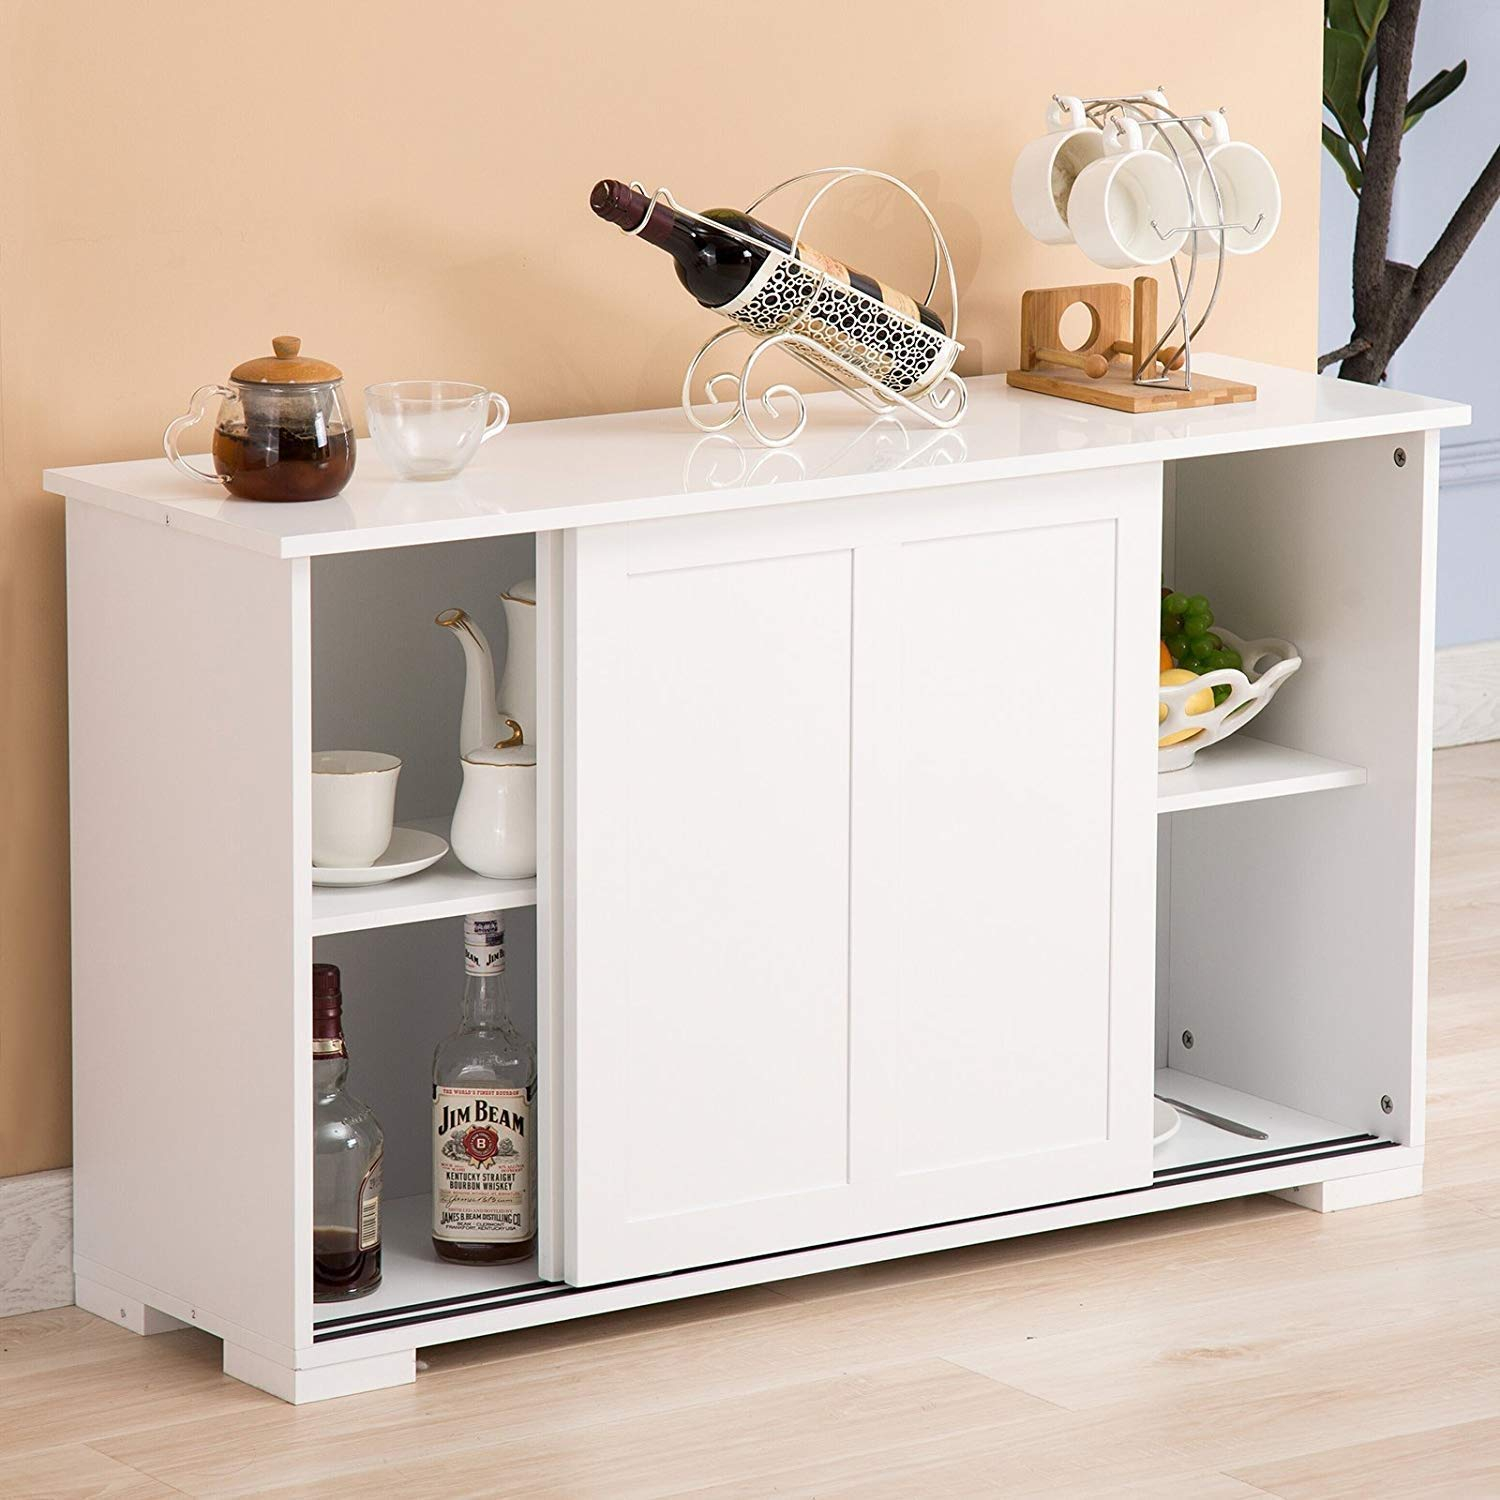 Mecor Sideboards And Storage Cabinet White Kitchen Buffet Cabinet Server Table With 2 Sliding Doors 1 Shelf Dining Room Furniture